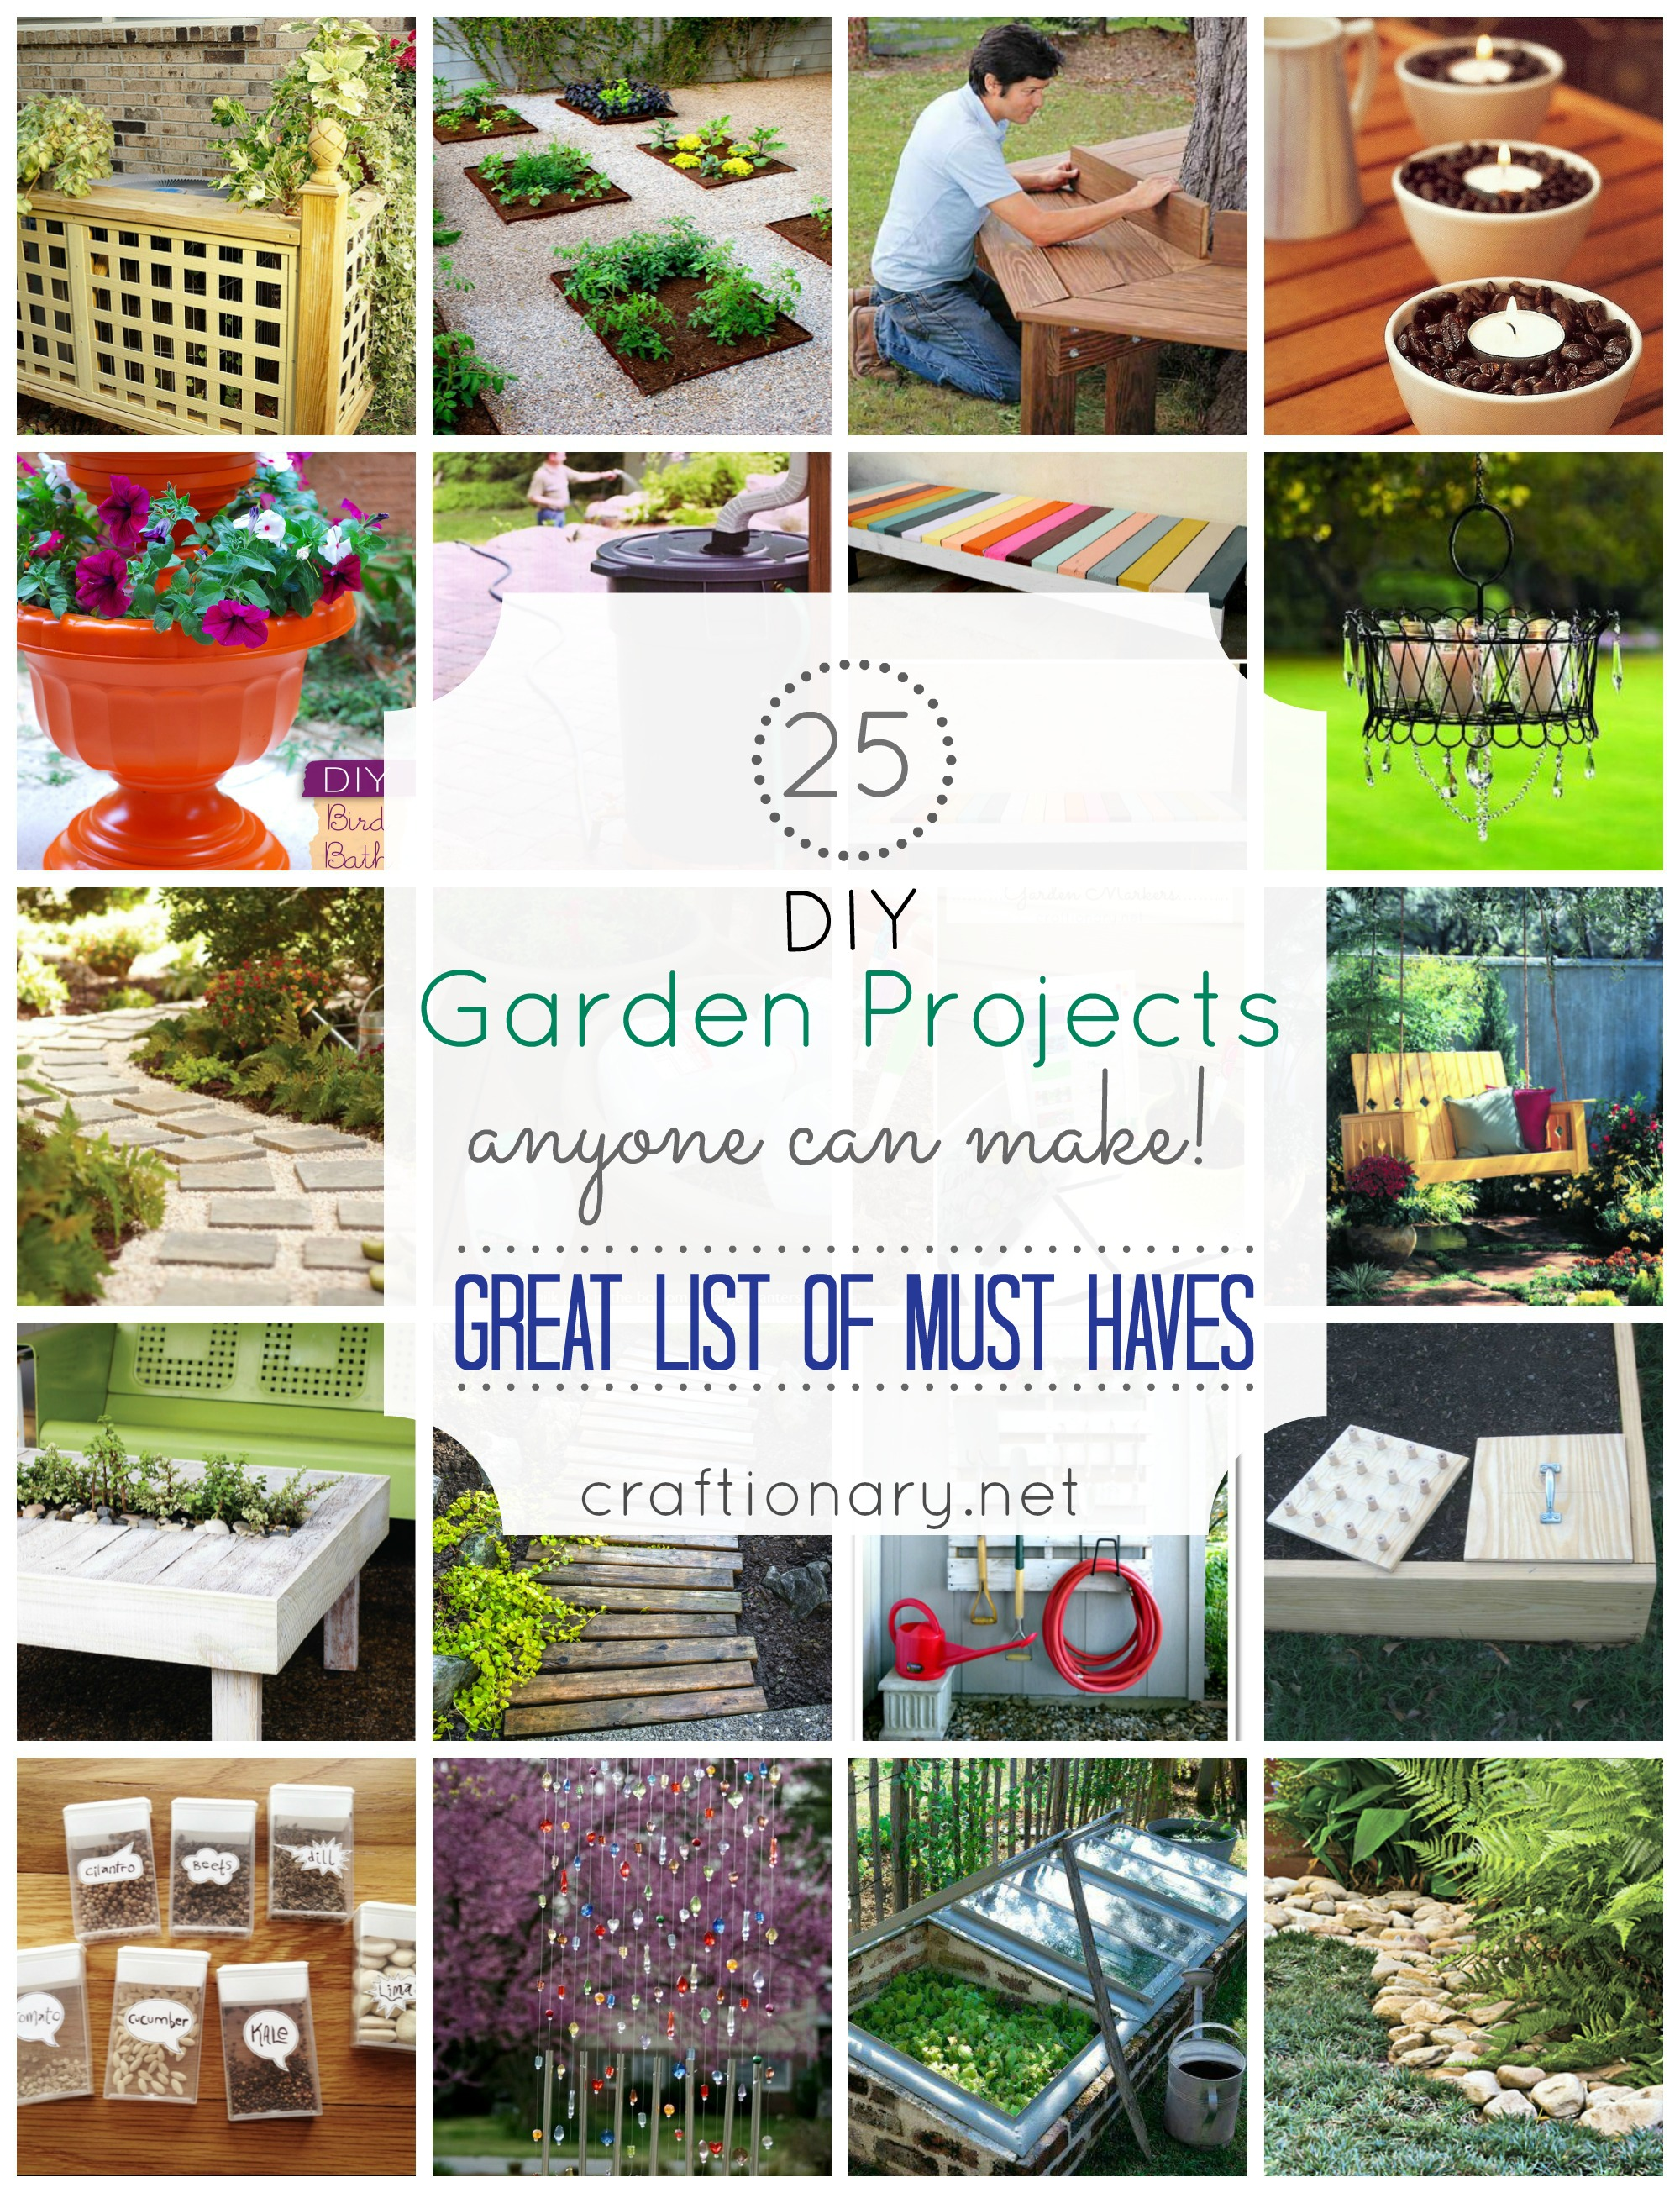 Craftionary diy garden projects solutioingenieria